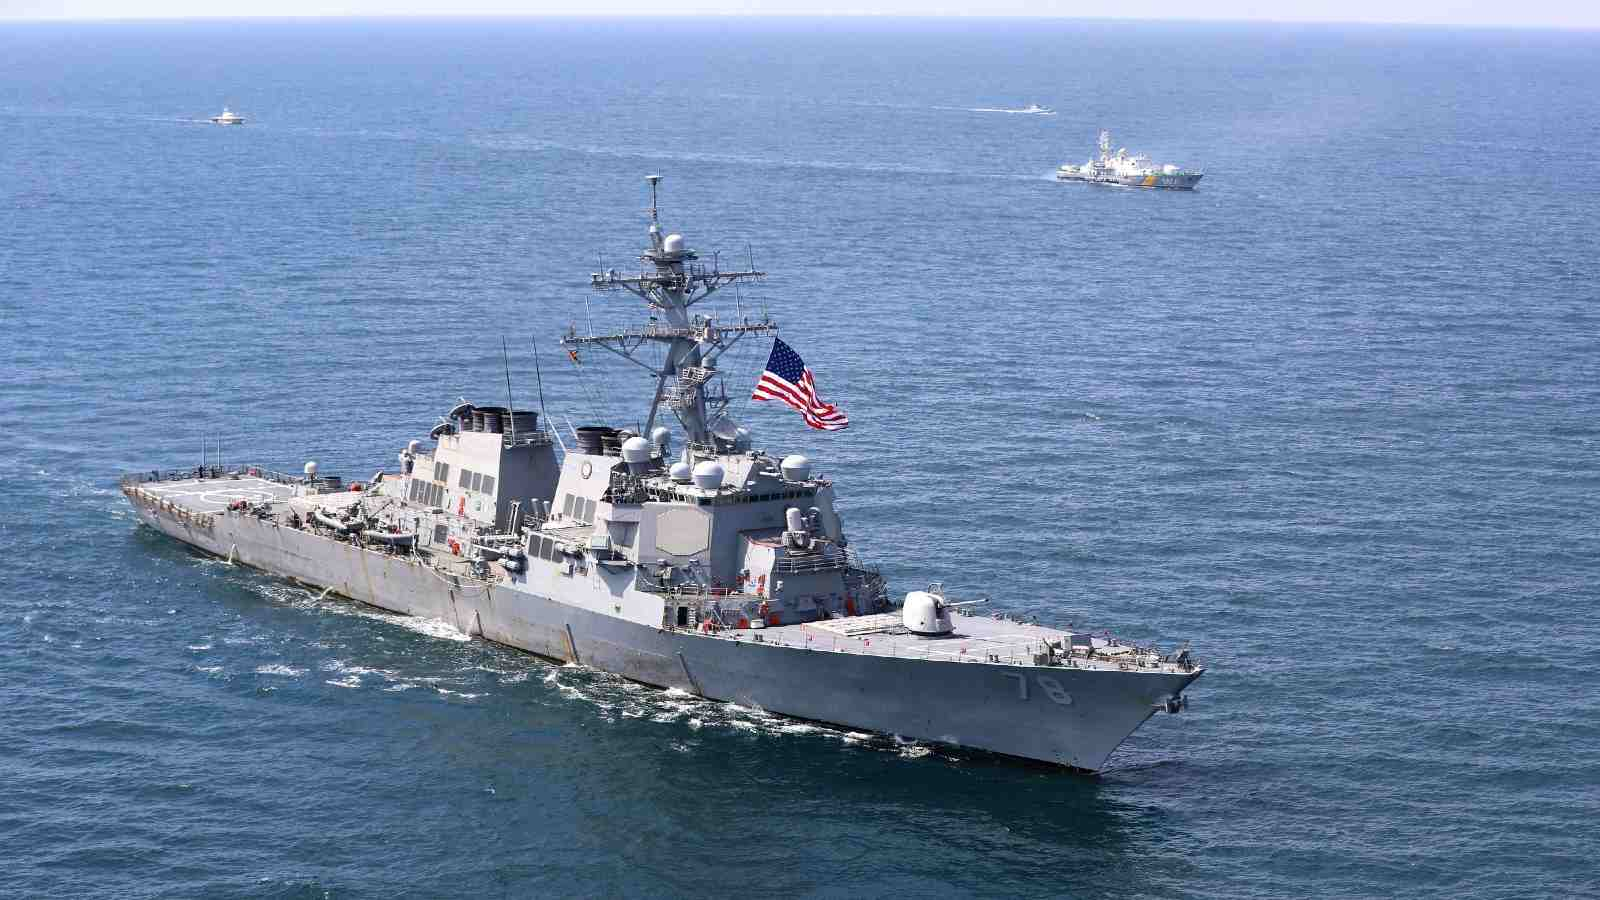 The guided-missile destroyer USS Porter (DDG 78) is underway in the Black Sea during exercise Sea Breeze 2020, July 25, 2020. Sea Breeze is an annual exercise designed to enhance interoperability among participating nations and strengthen regional security. The exercise began in 1997, bringing Black Sea nations together to train and operate with NATO members to build interoperability and increase capability